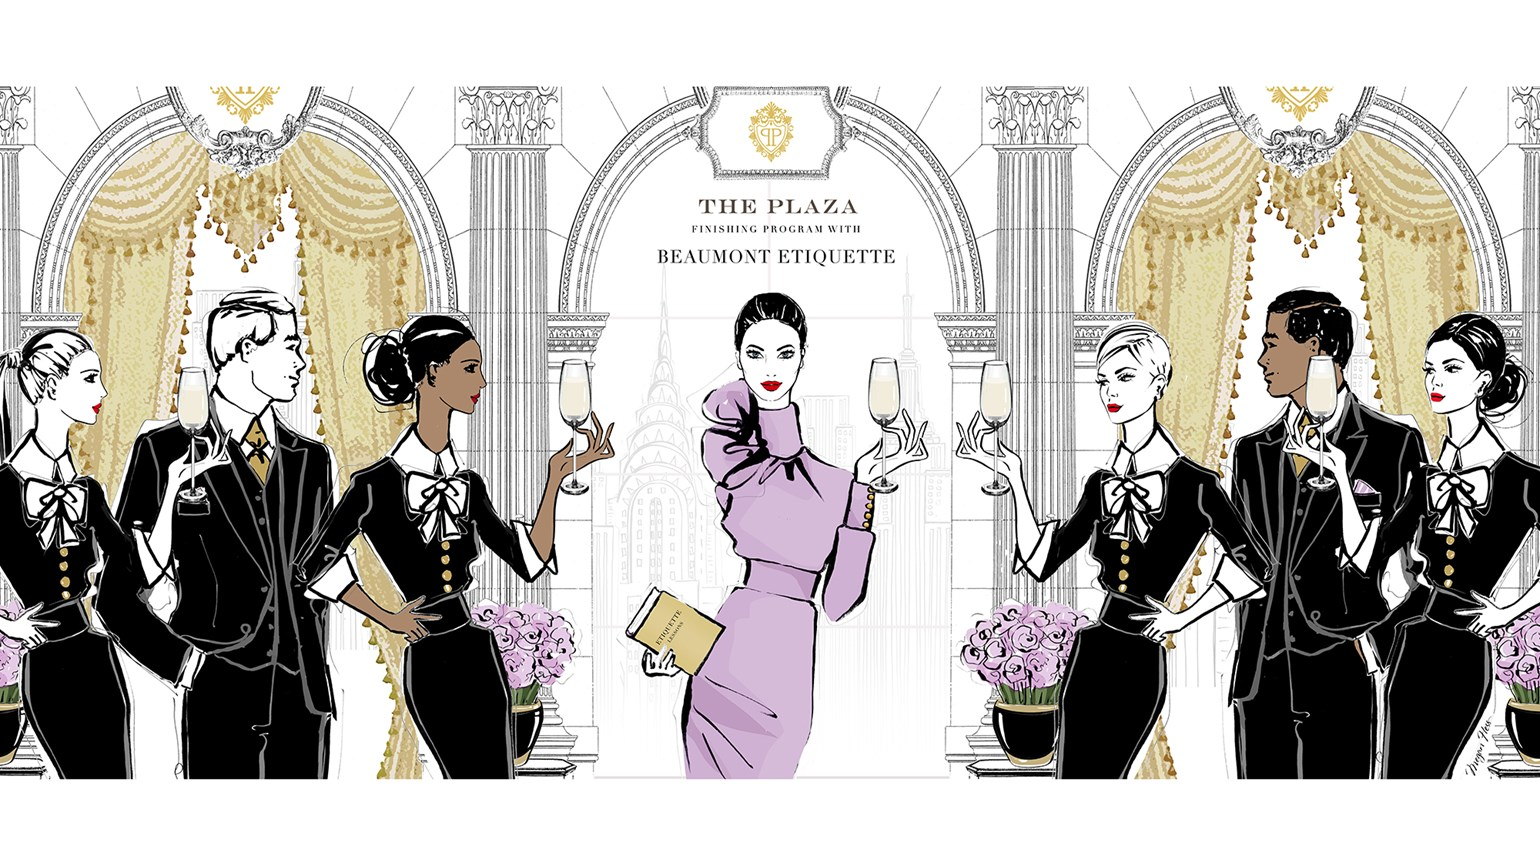 The Plaza New York offers etiquette classes